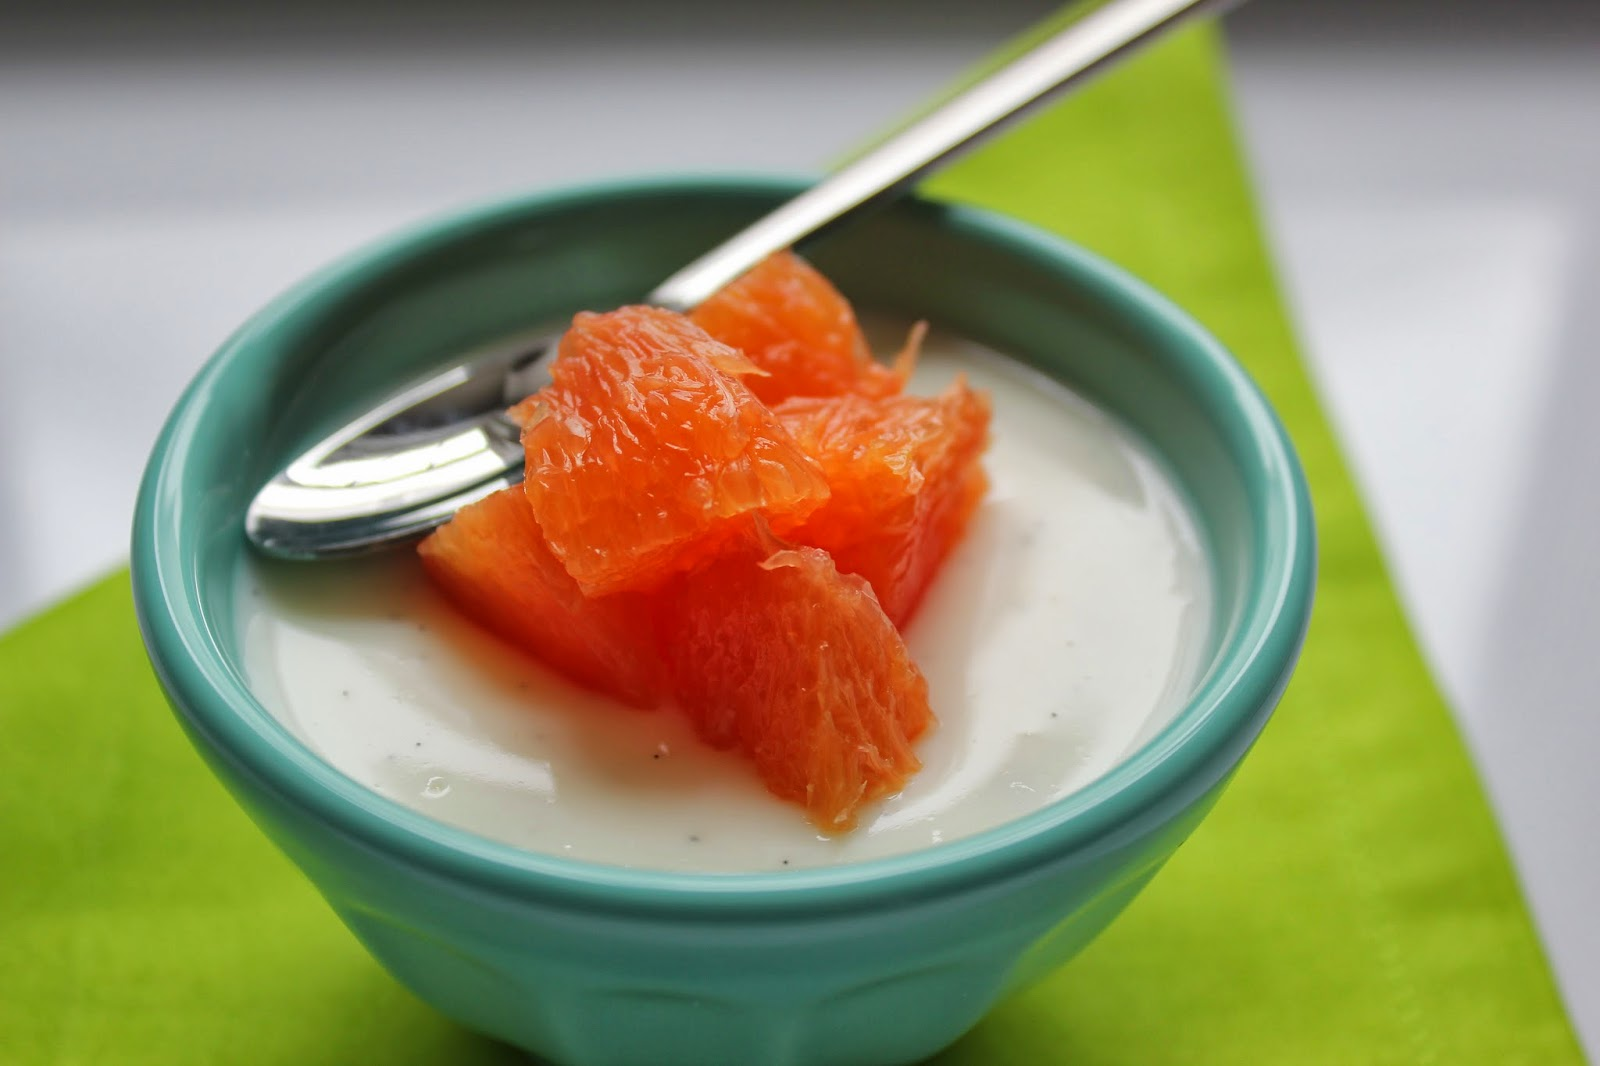 yogurt panna cotta with Cara Cara orange segments